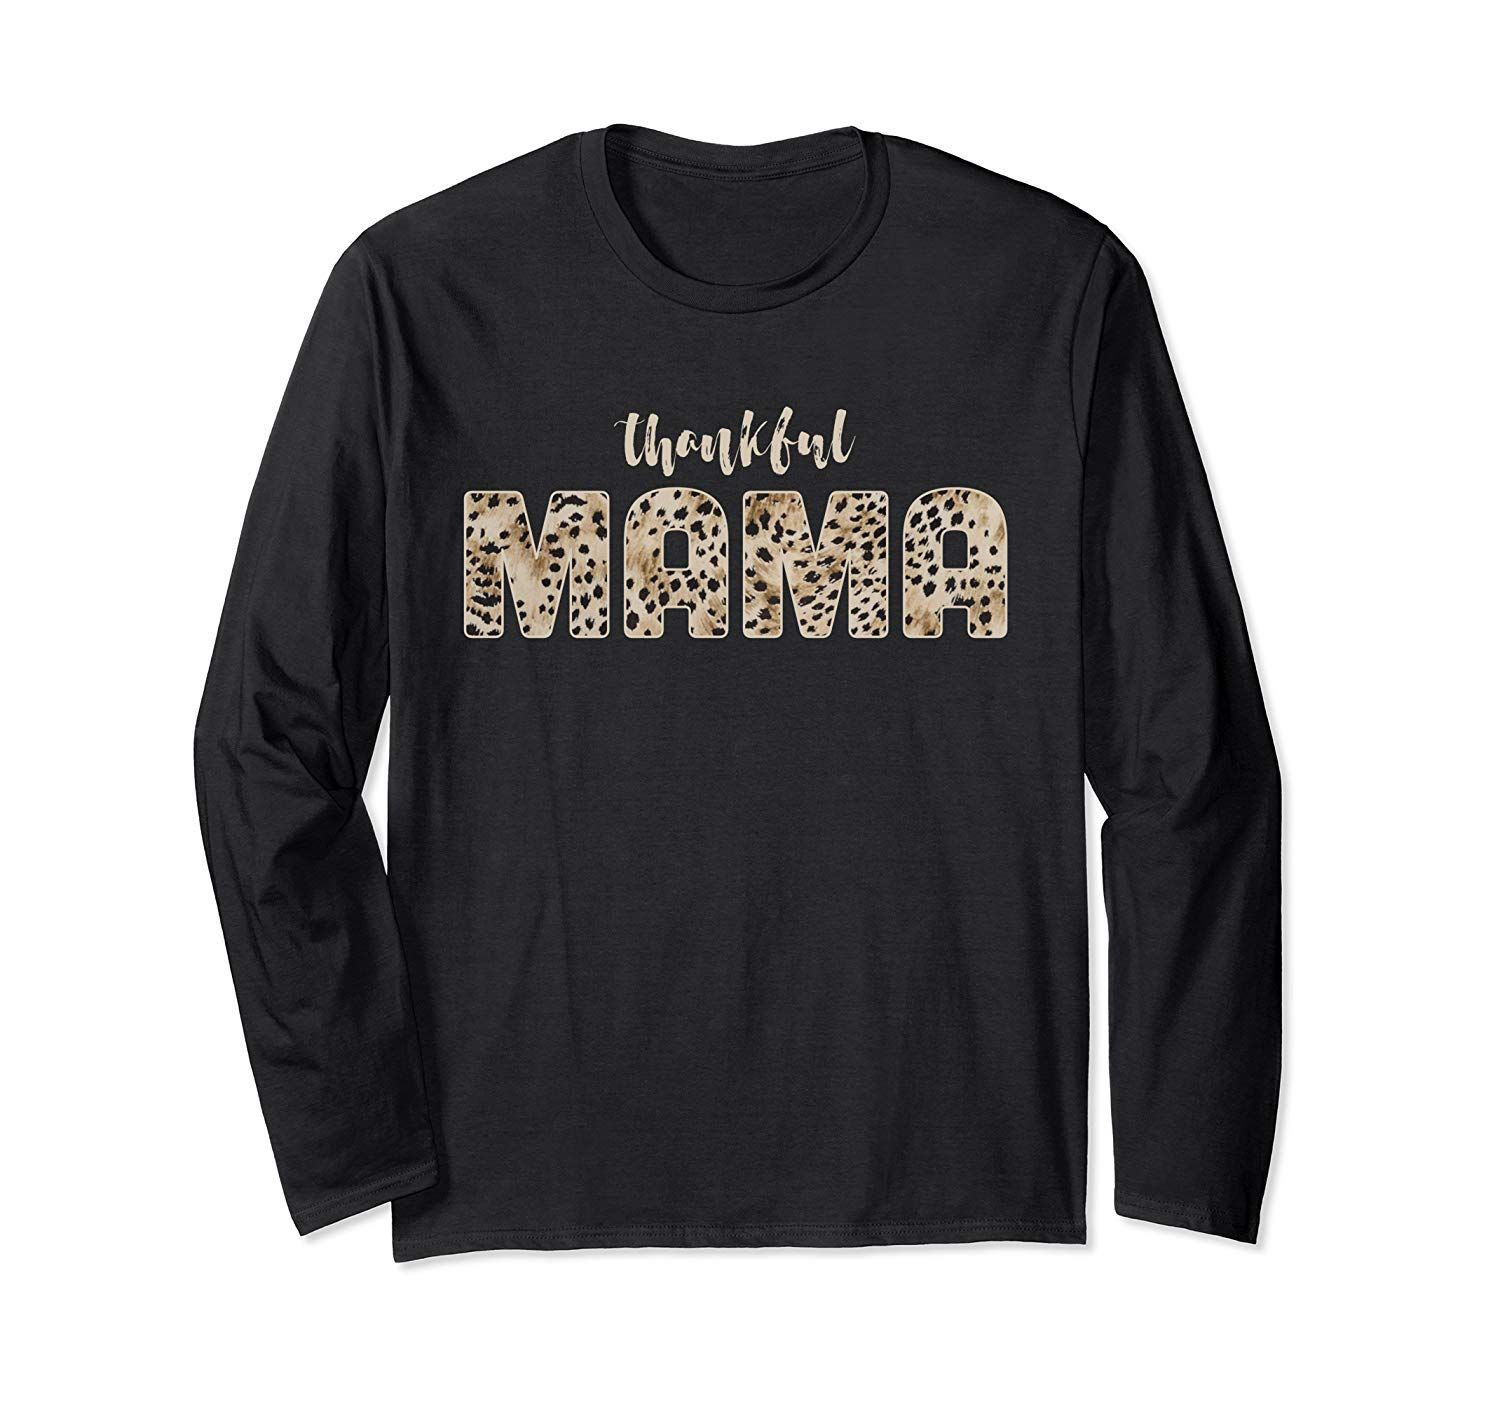 Thankful Mama Leopard Print Thanksgiving Outfit Idea Long Sleeve T-Shirt